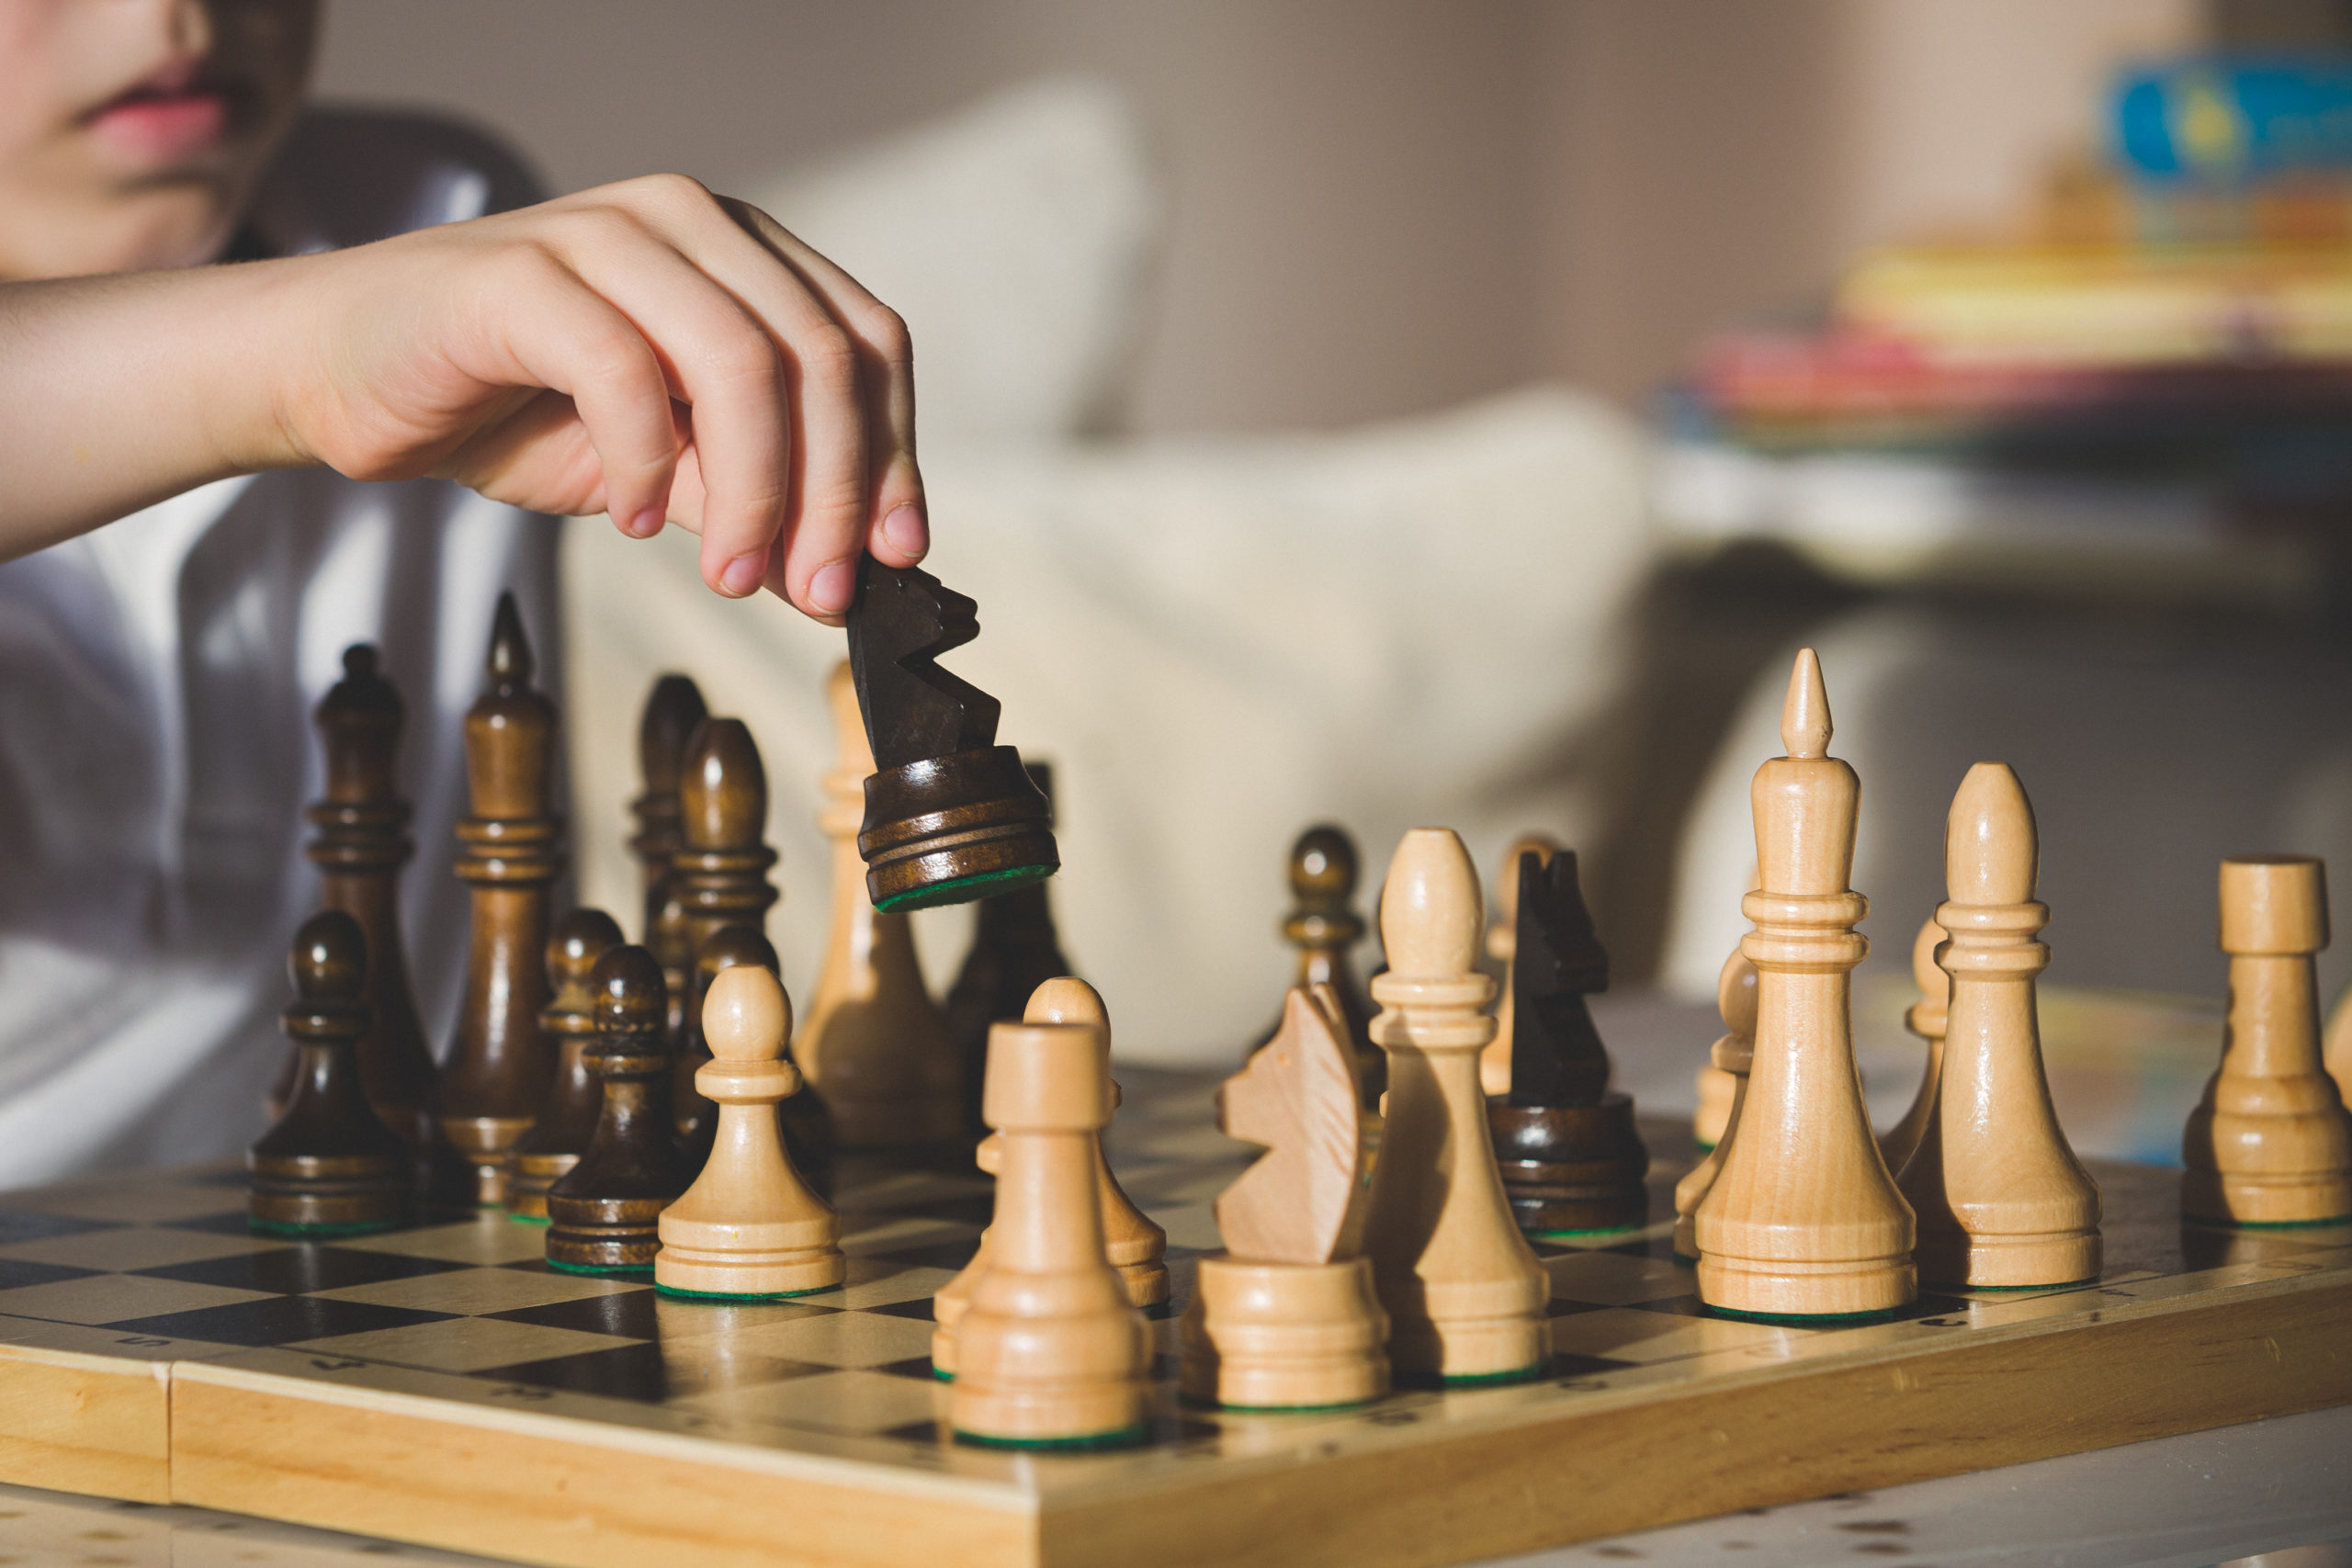 A cute boy with a serious look sits at a table and plays chess. The kid picked up the chess piece of the horse and makes his move. Early development, home educational games for children